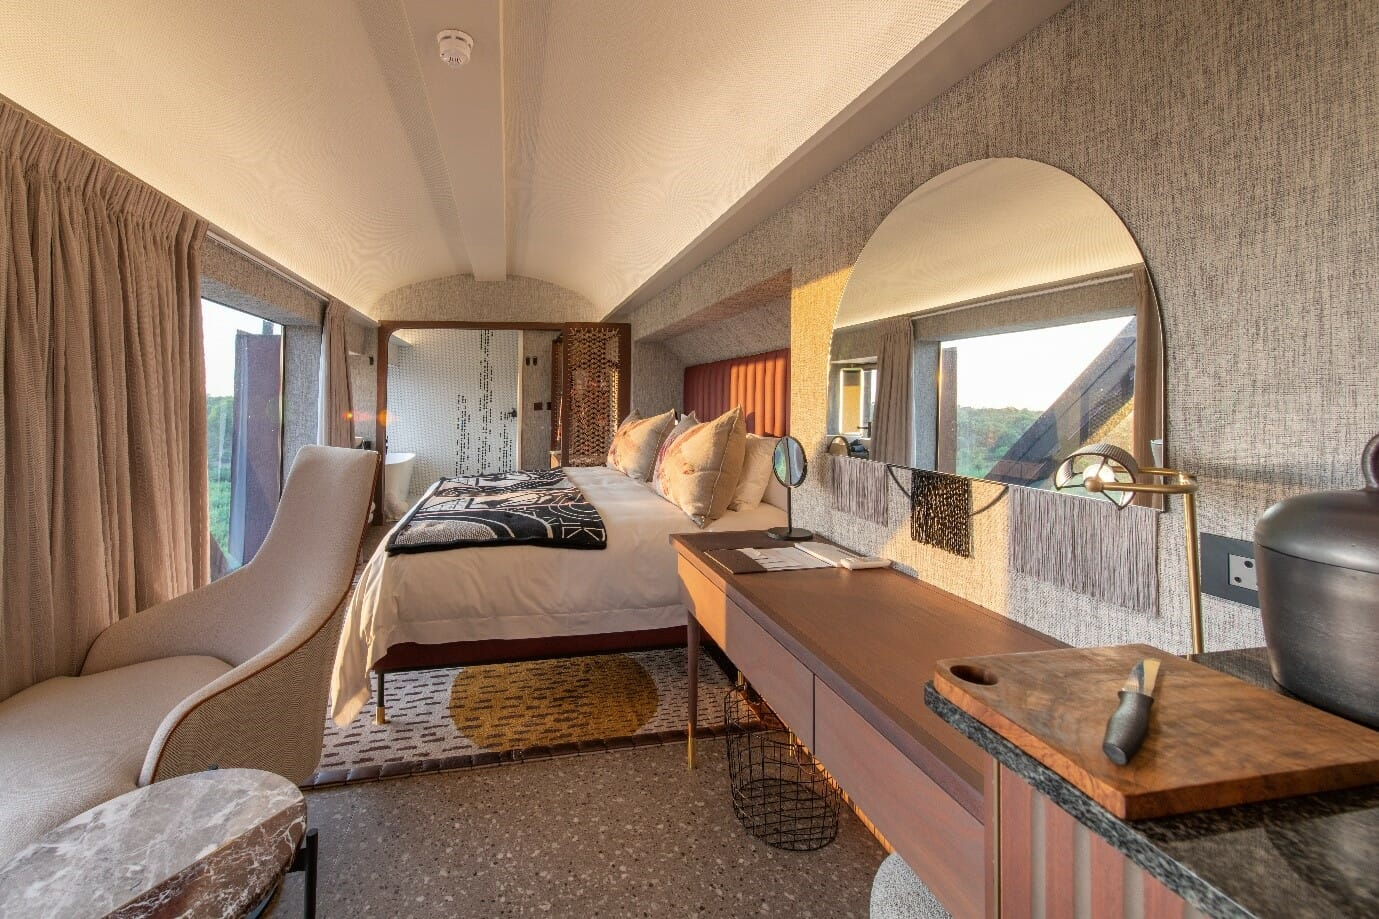 Beautiful train interiors by Andrea Kleinloog from HK Studio. Photo courtesy of Kruger Shalati / Kyle Lewin